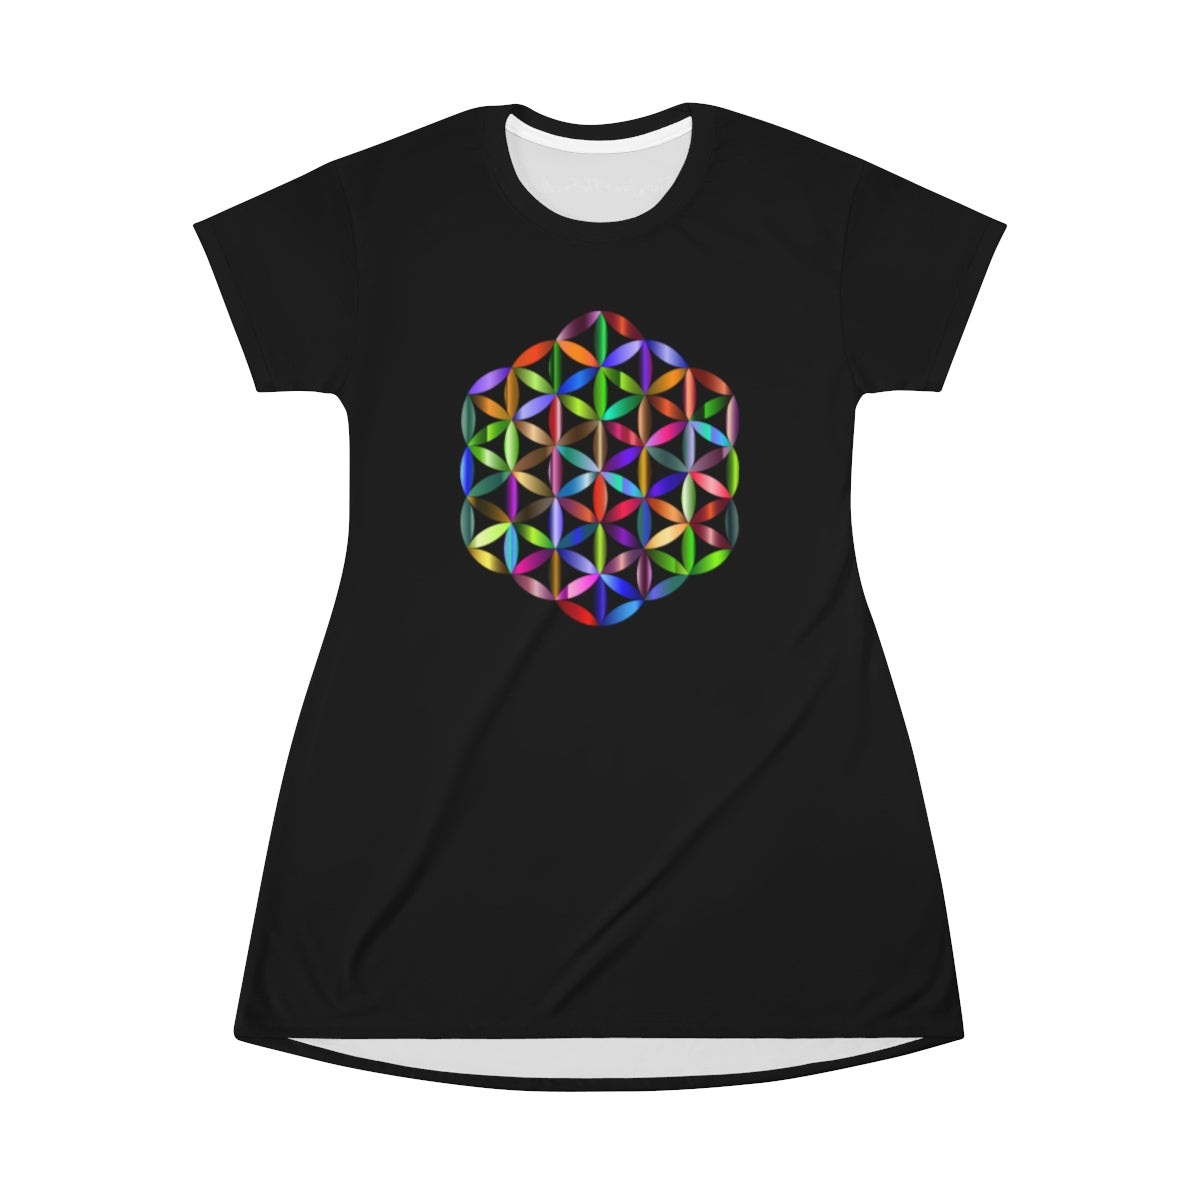 *FLOWER OF LIFE* (MULTI-COLOR) T-Shirt Dress